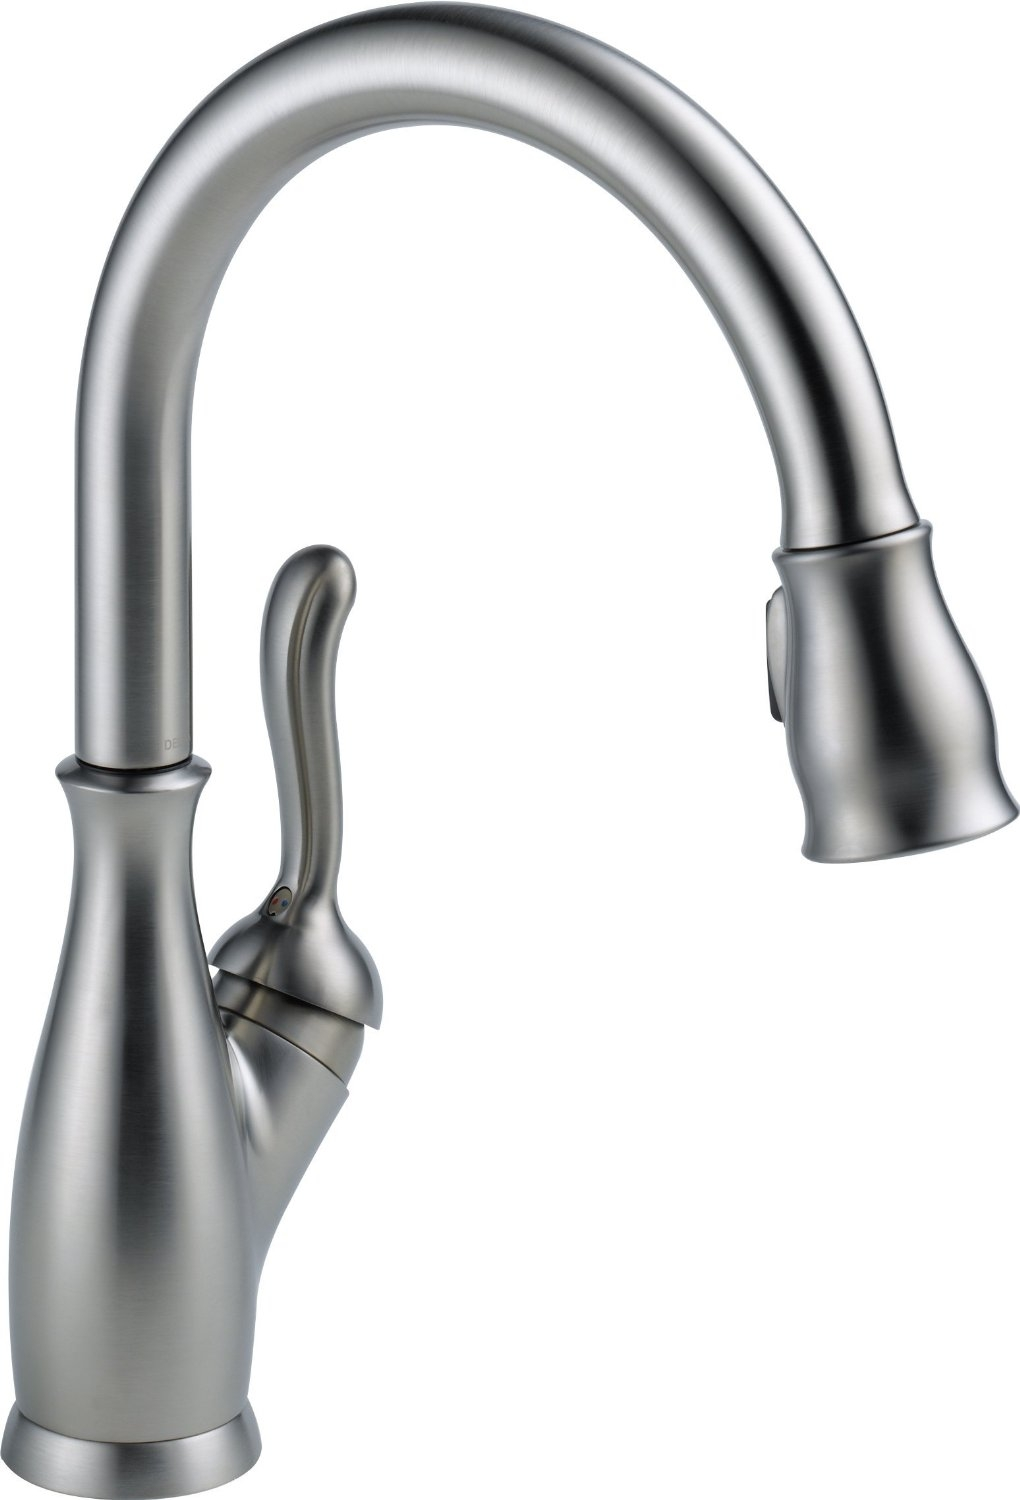 Ideas, whats the best pull down kitchen faucet faucetshub throughout proportions 1020 x 1500  .